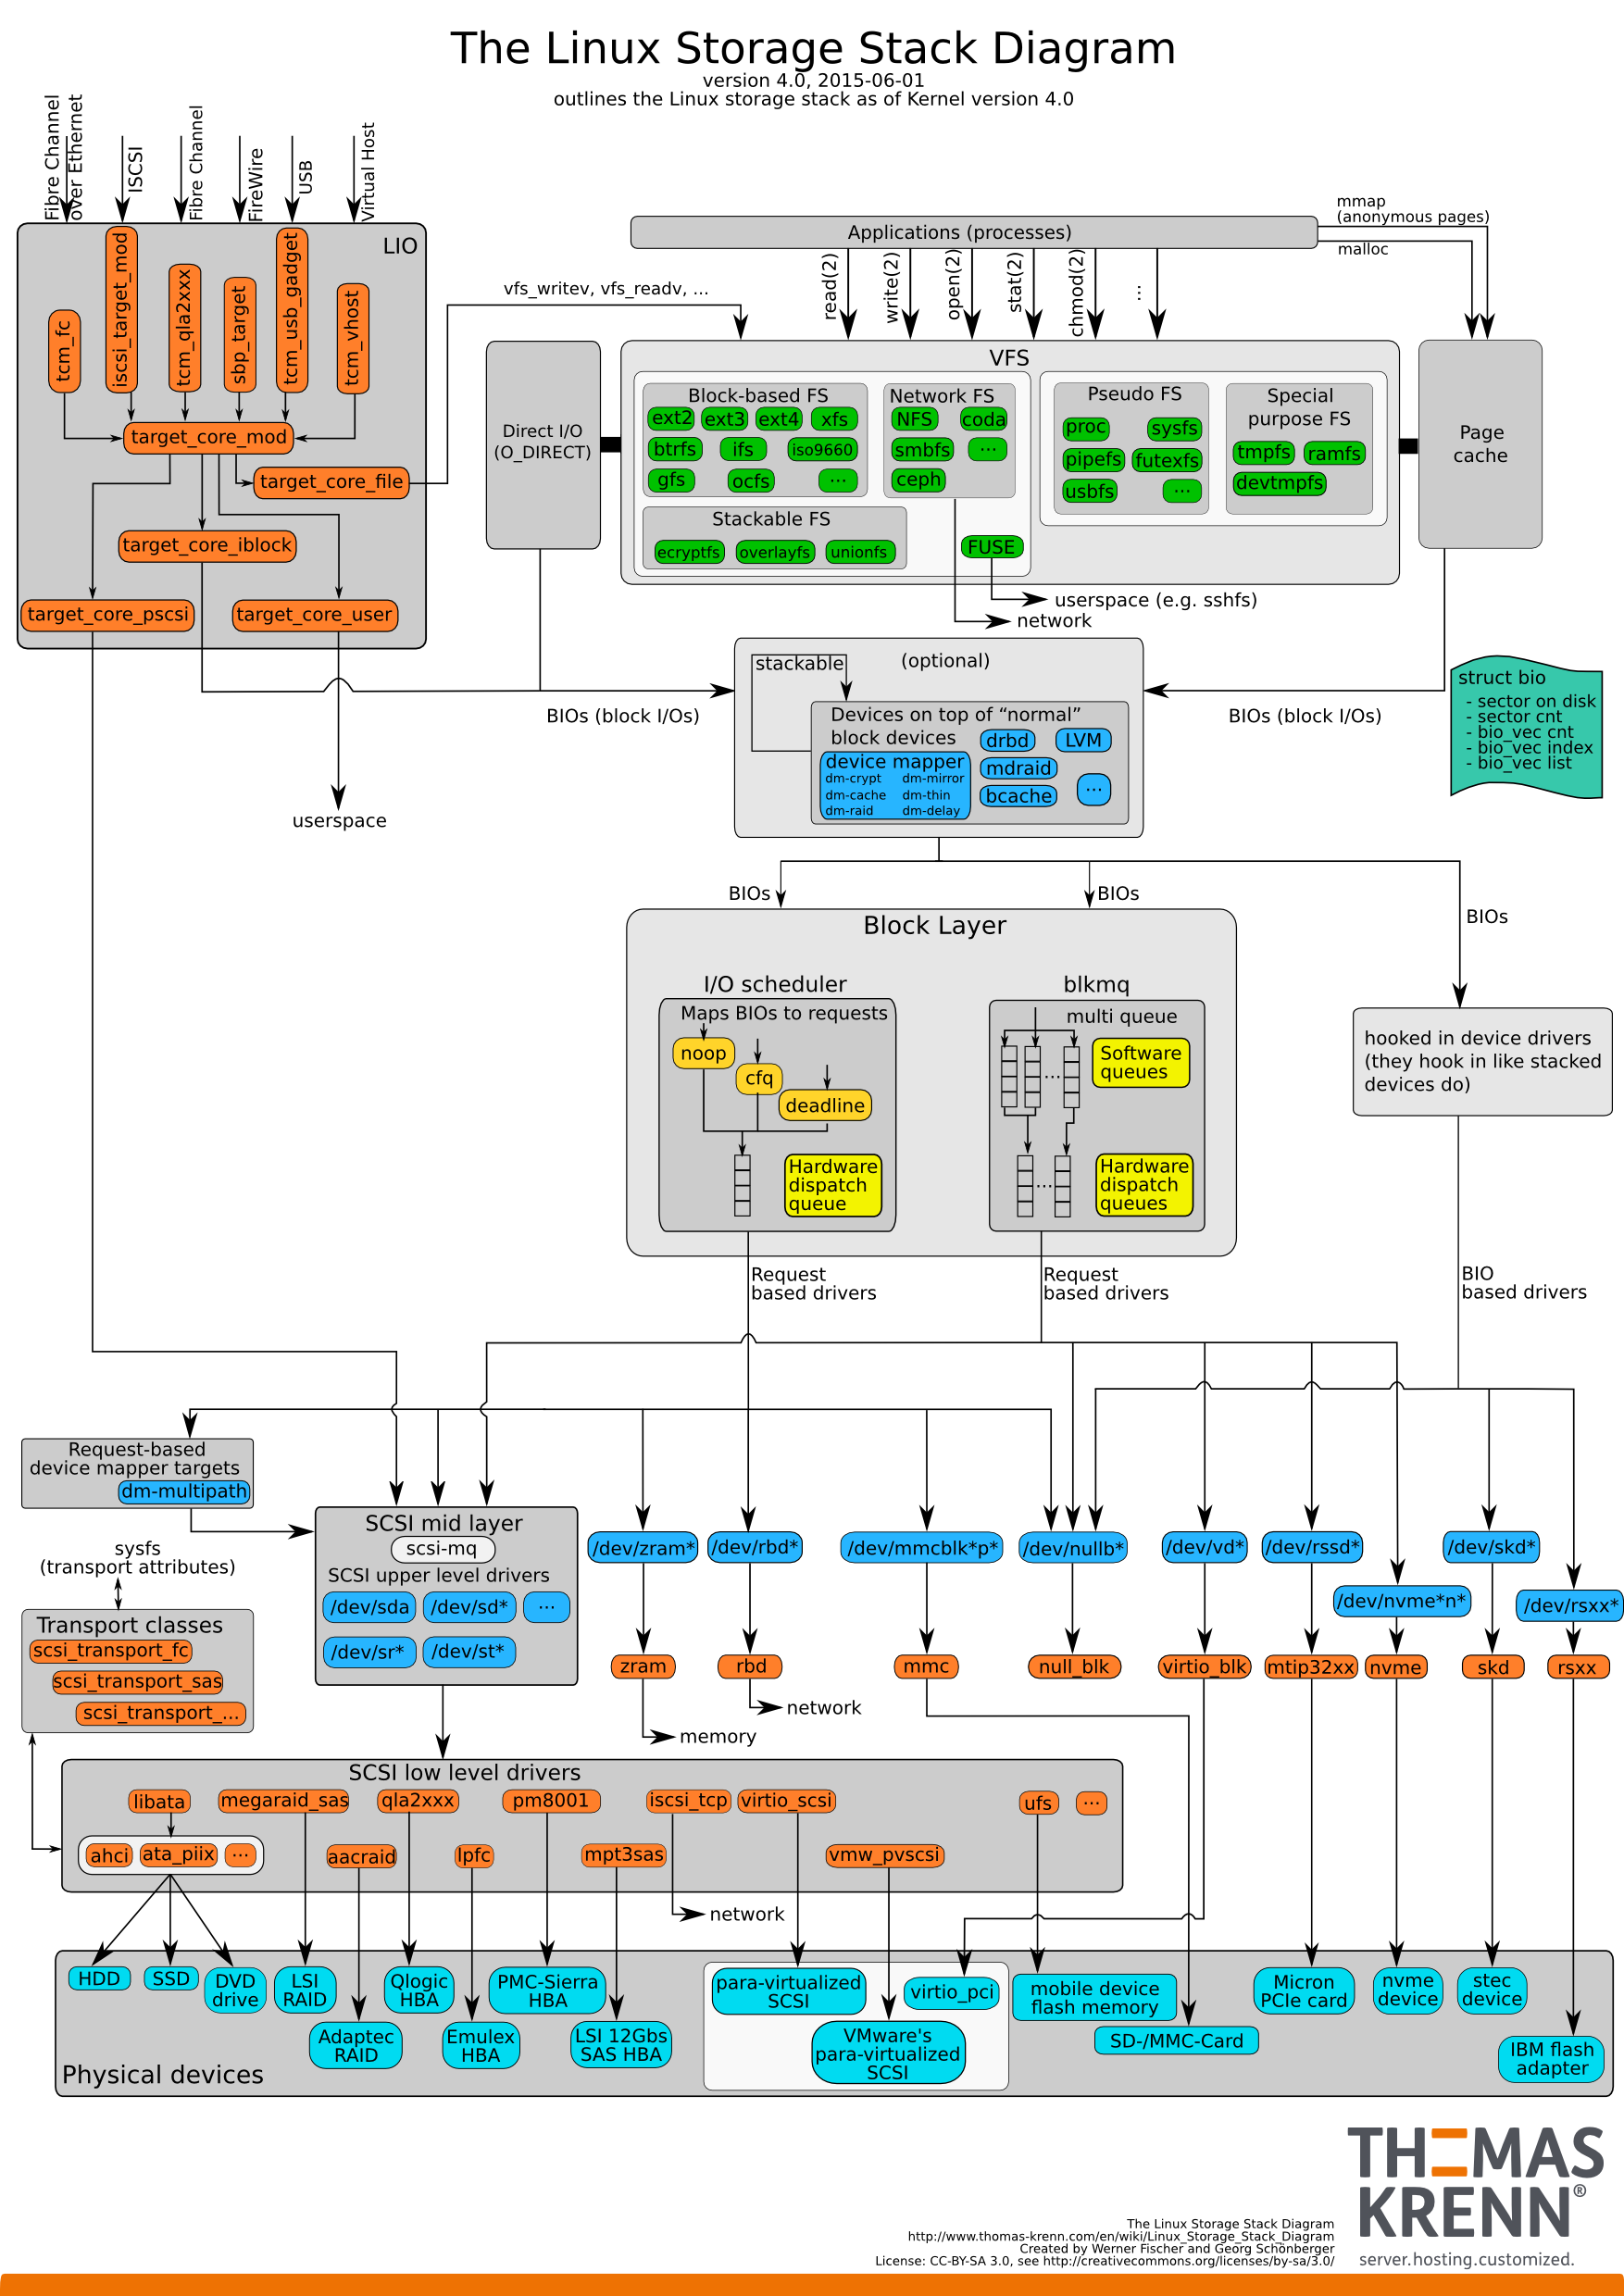 Linux Storage Stack Diagram Thomas Krenn Wiki